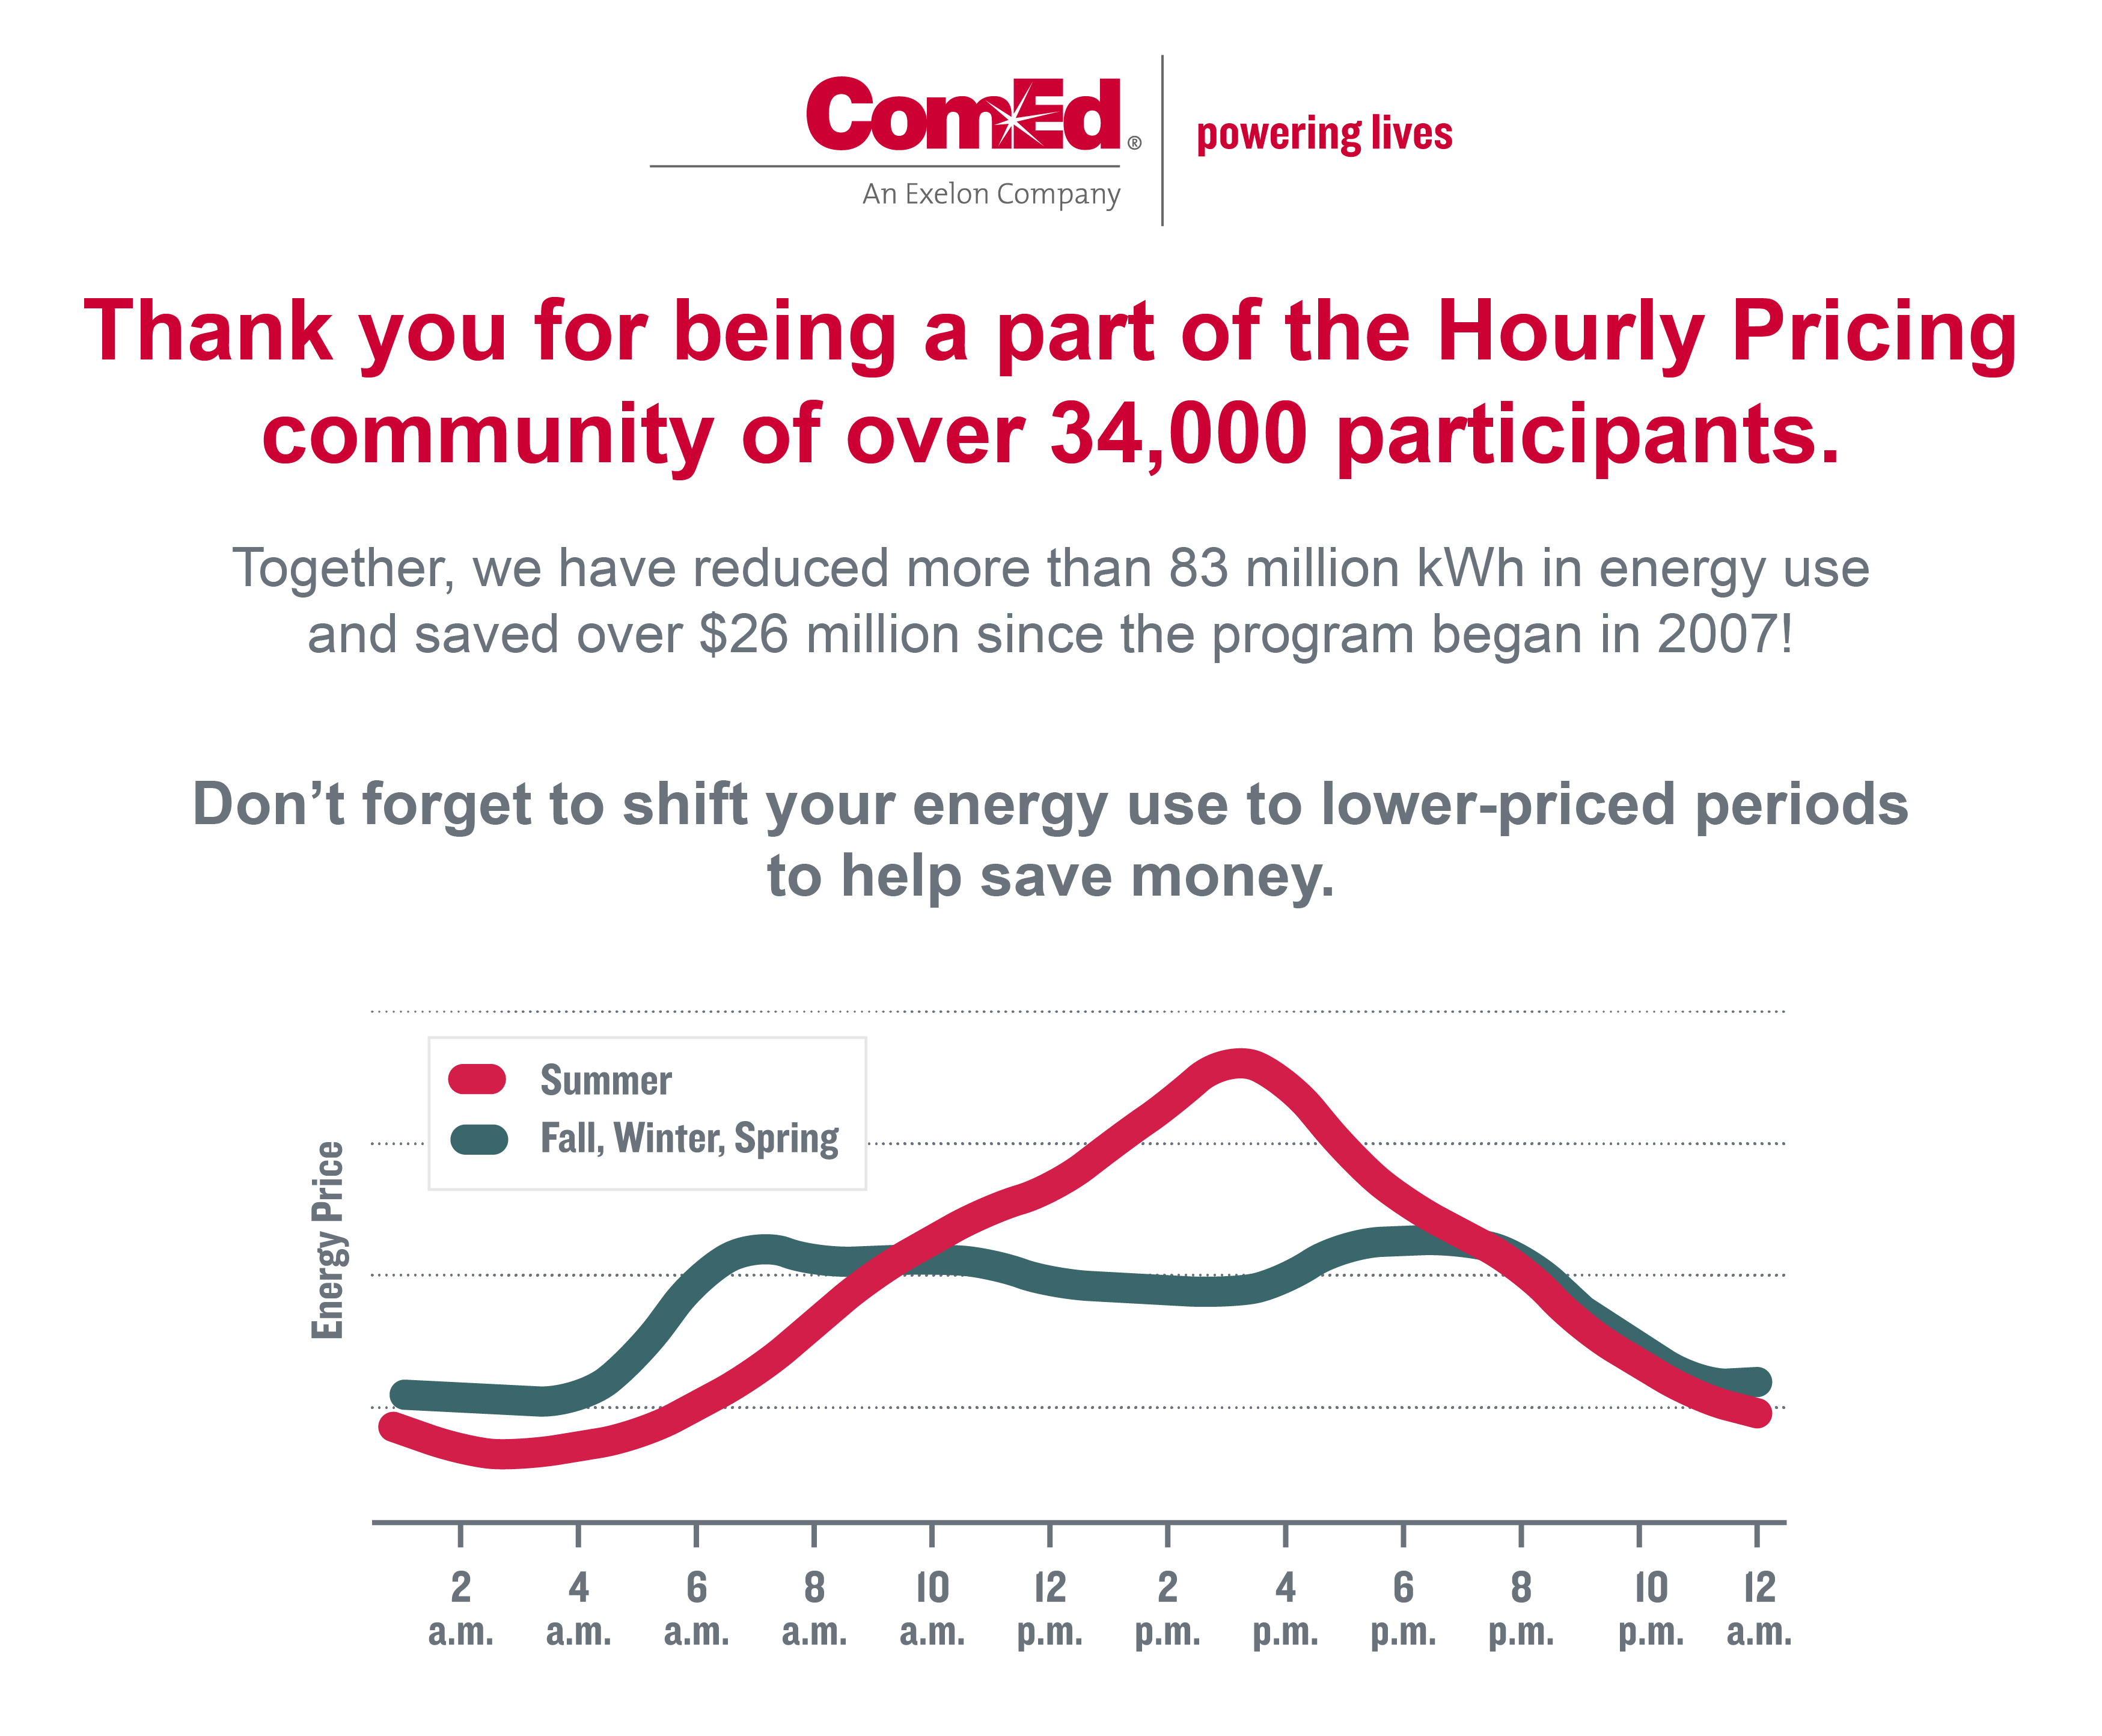 Thank you for being a part of the Hourly Pricing community of over 24,000 participants. Together, we have reduced more than 47 million kilowatt hours in energy usage and saved over $19,000,000 since the program began in 2007! Don't forget, the seasons are changing, and so is the real-time pricing pattern. During fall, winter, and spring, reduce your energy usage on weekdays from 8 a.m. to 11 a.m. and from 5 p.m. to 8 p.m., when prices are typically highest.